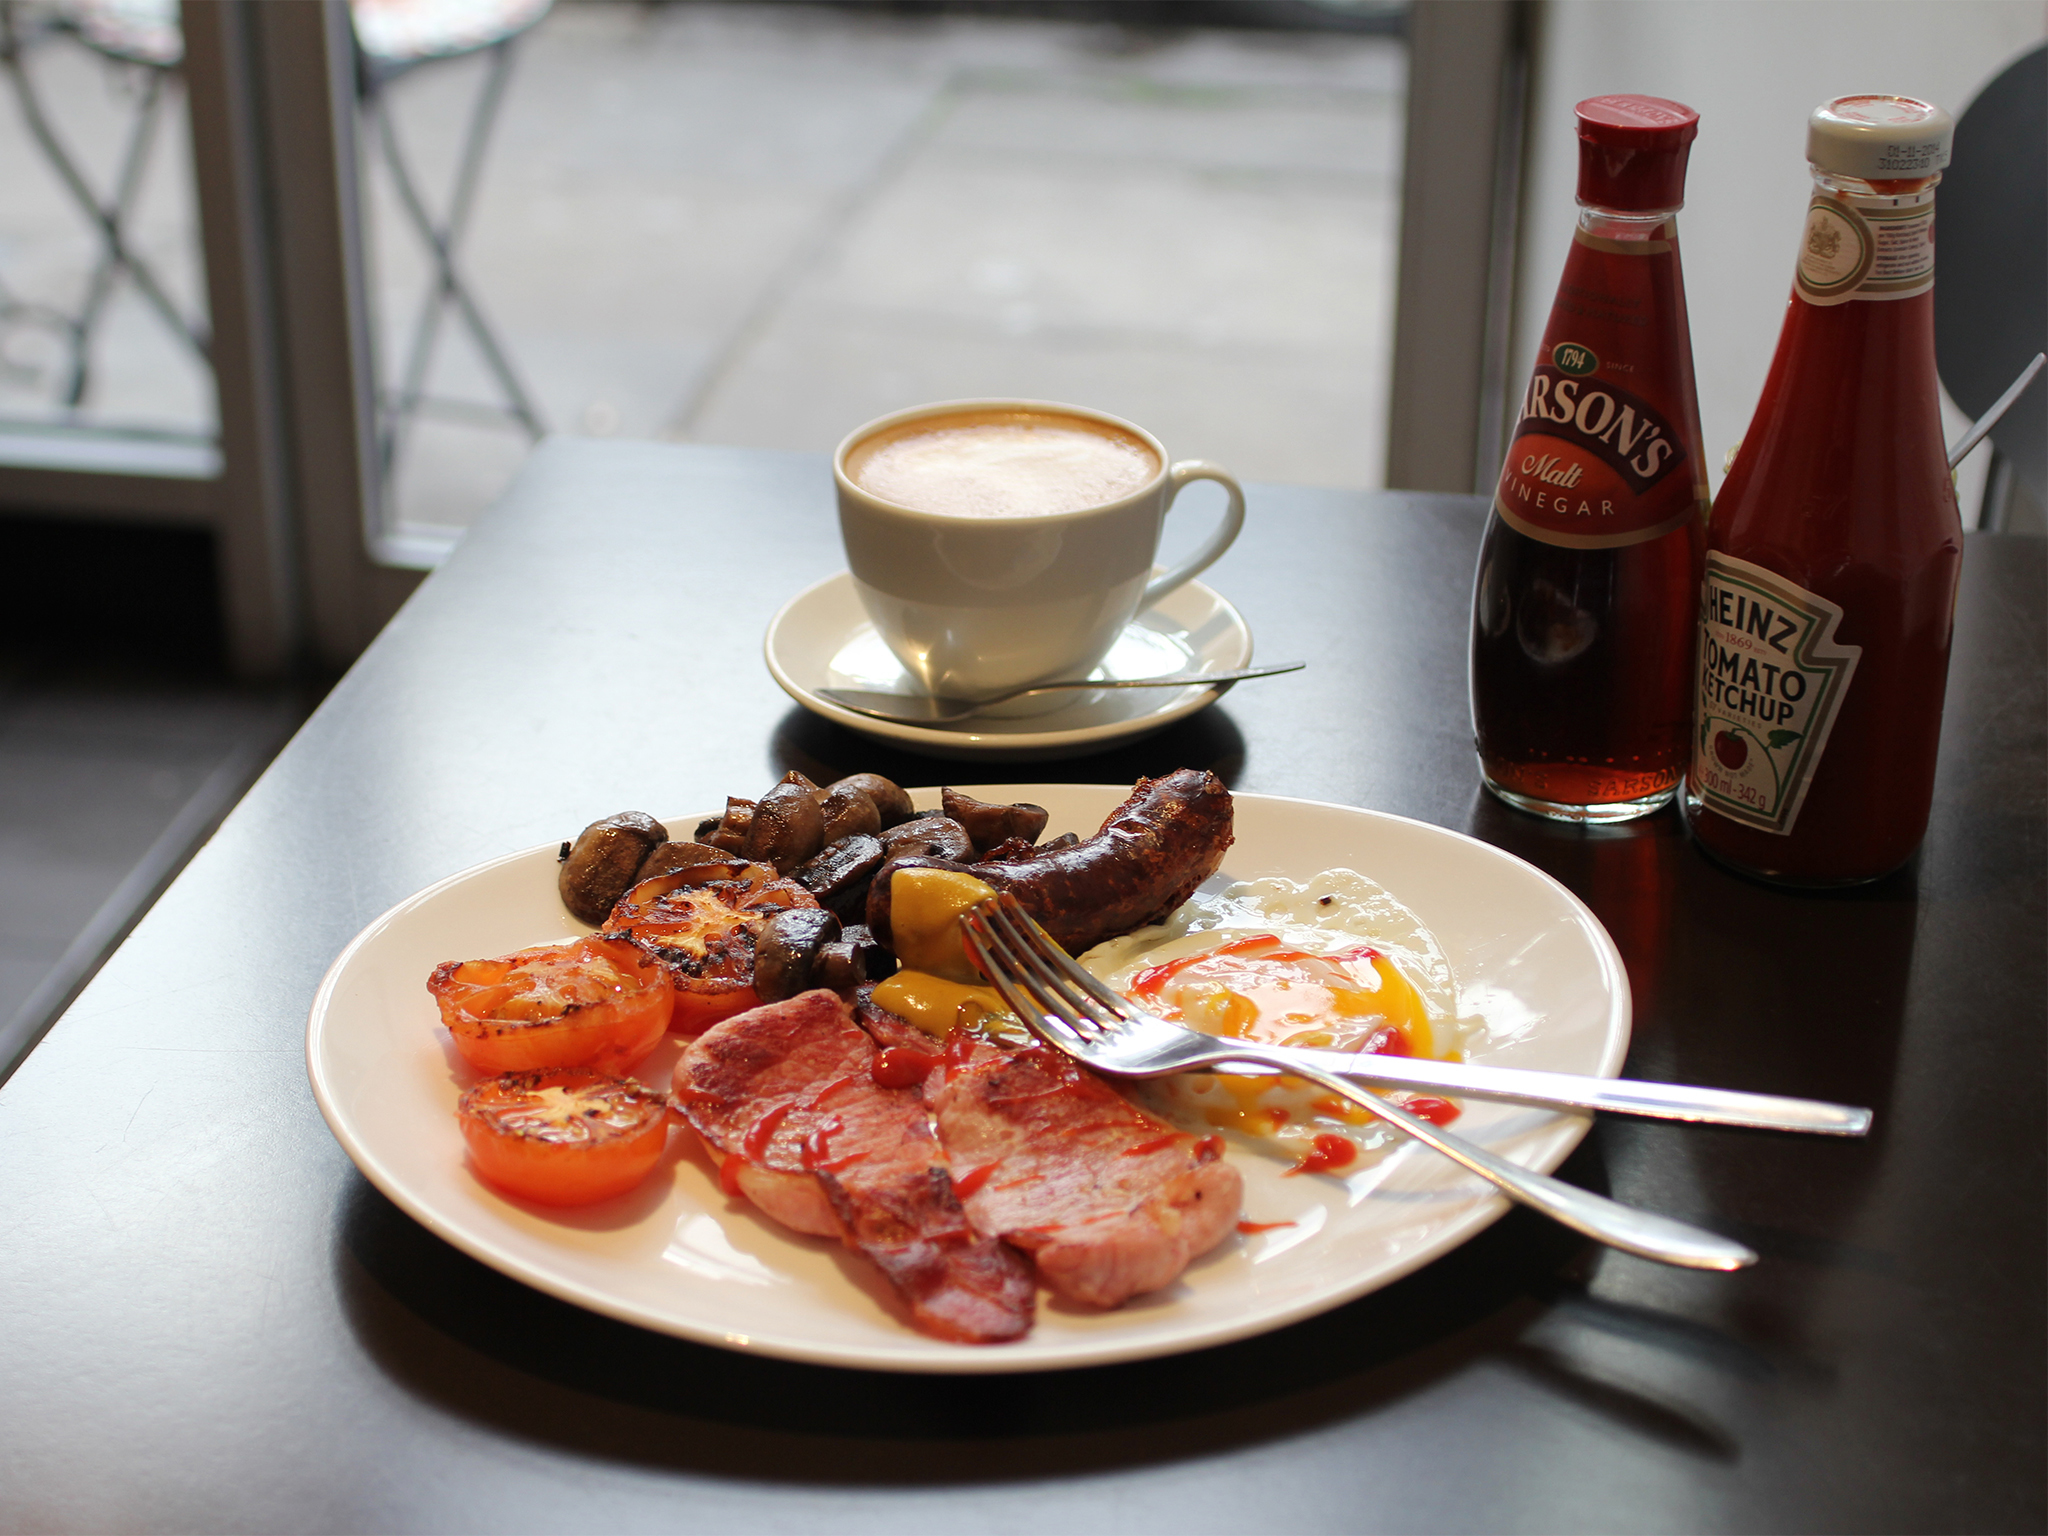 London's best greasy spoon cafes, mario's cafe